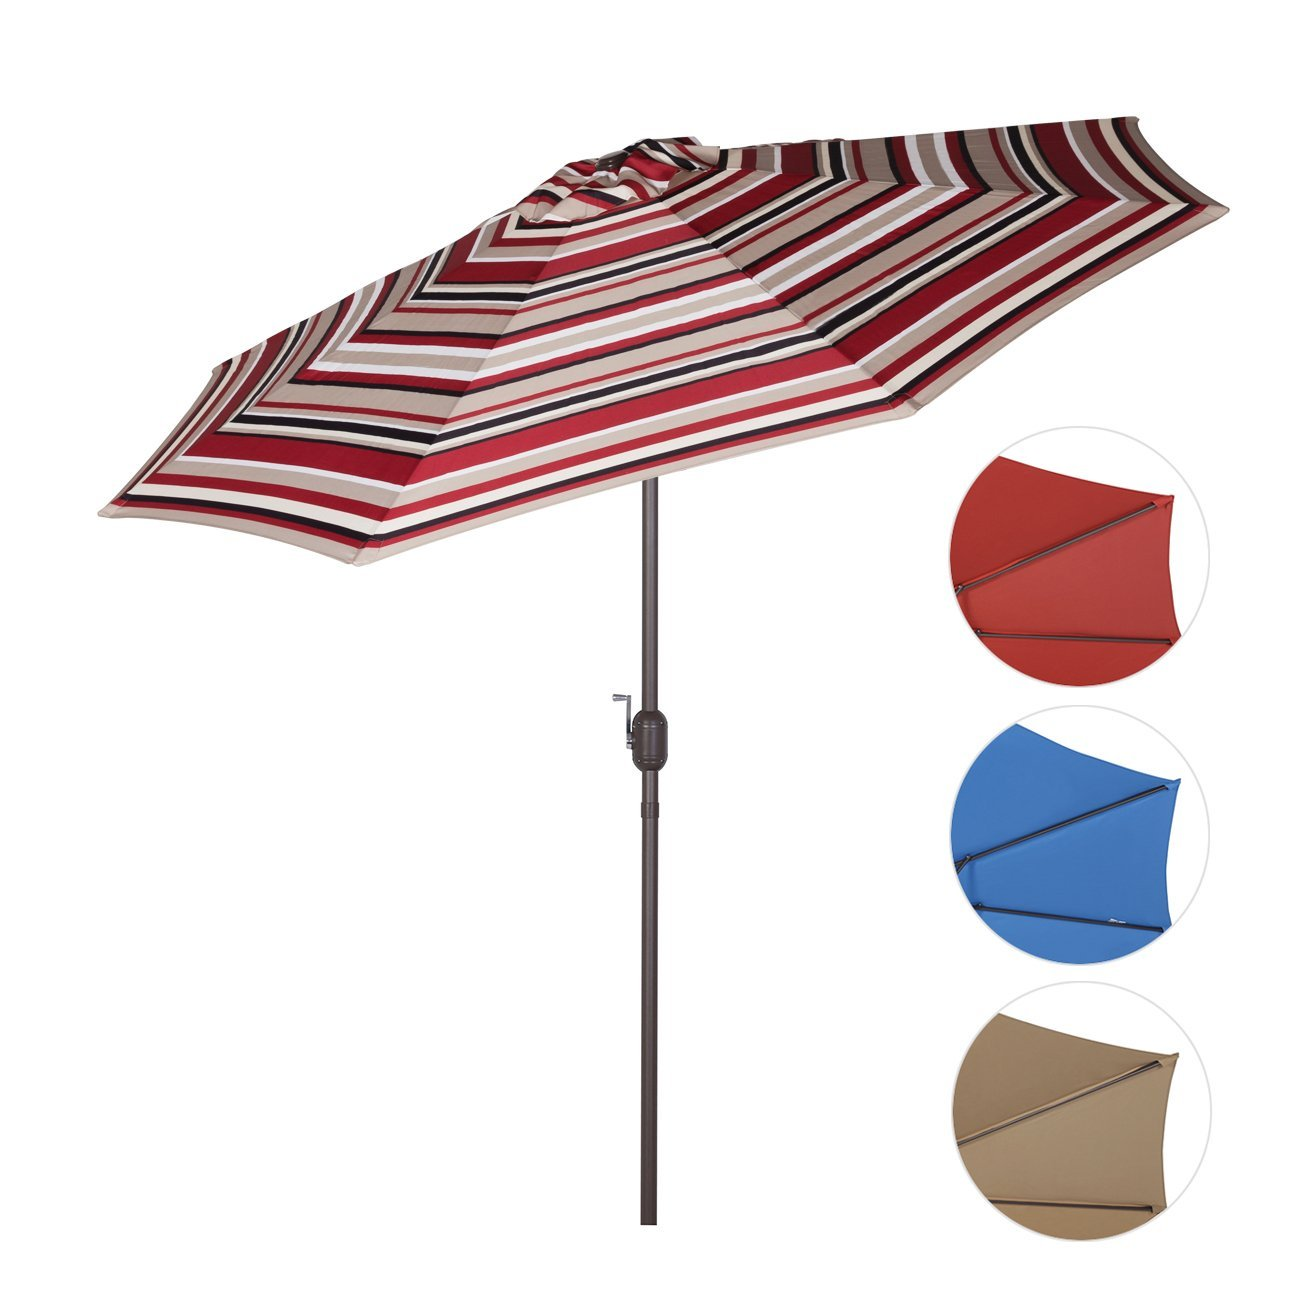 Sekey 9ft Outdoor Umbrella Red Stripes,Patio Umbrella Red Stripes Market  Umbrella Red Stripes With